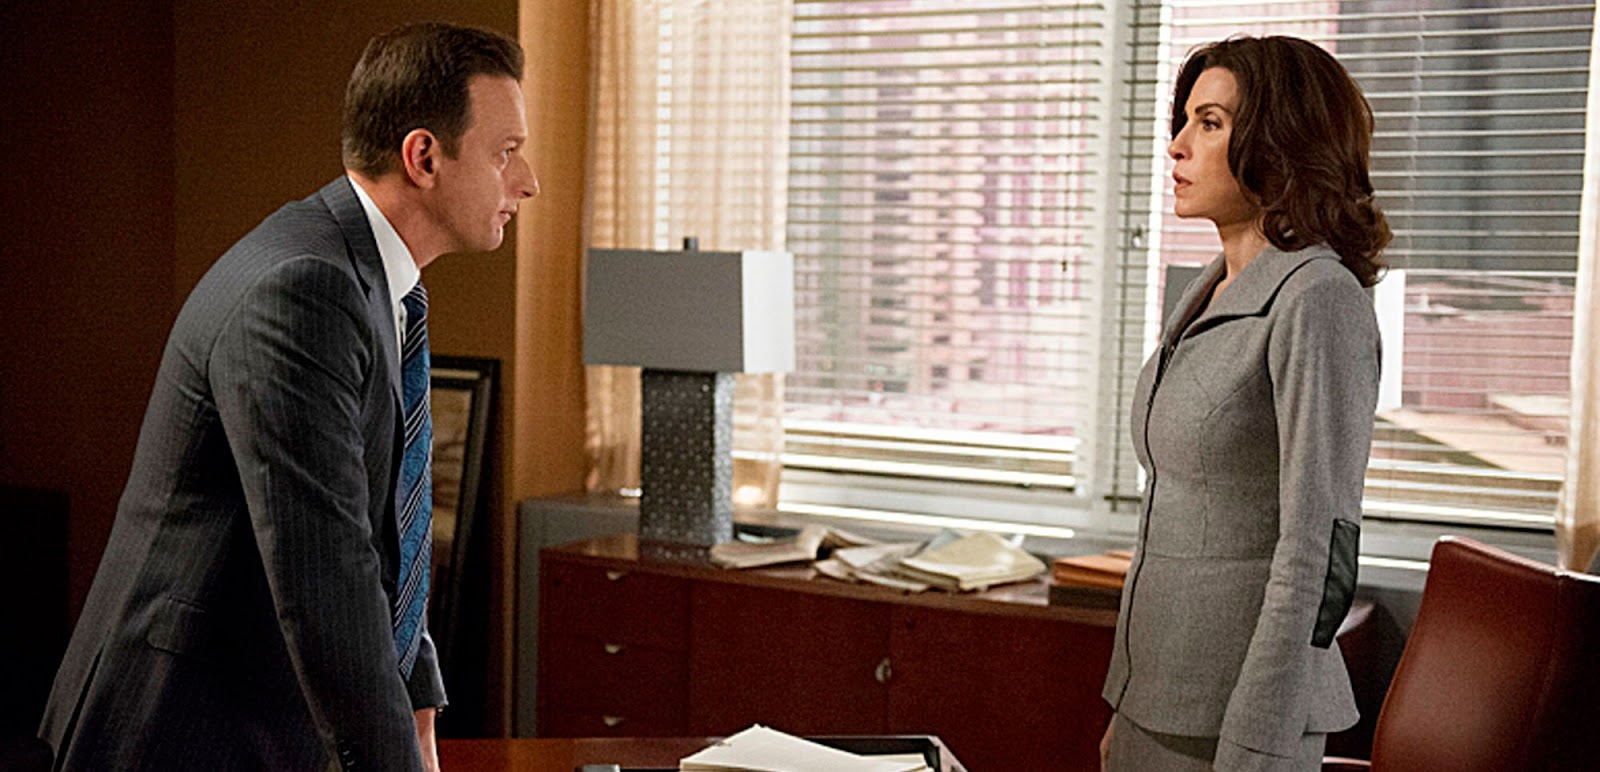 The Good Wife 5x05 Hitting the Fan